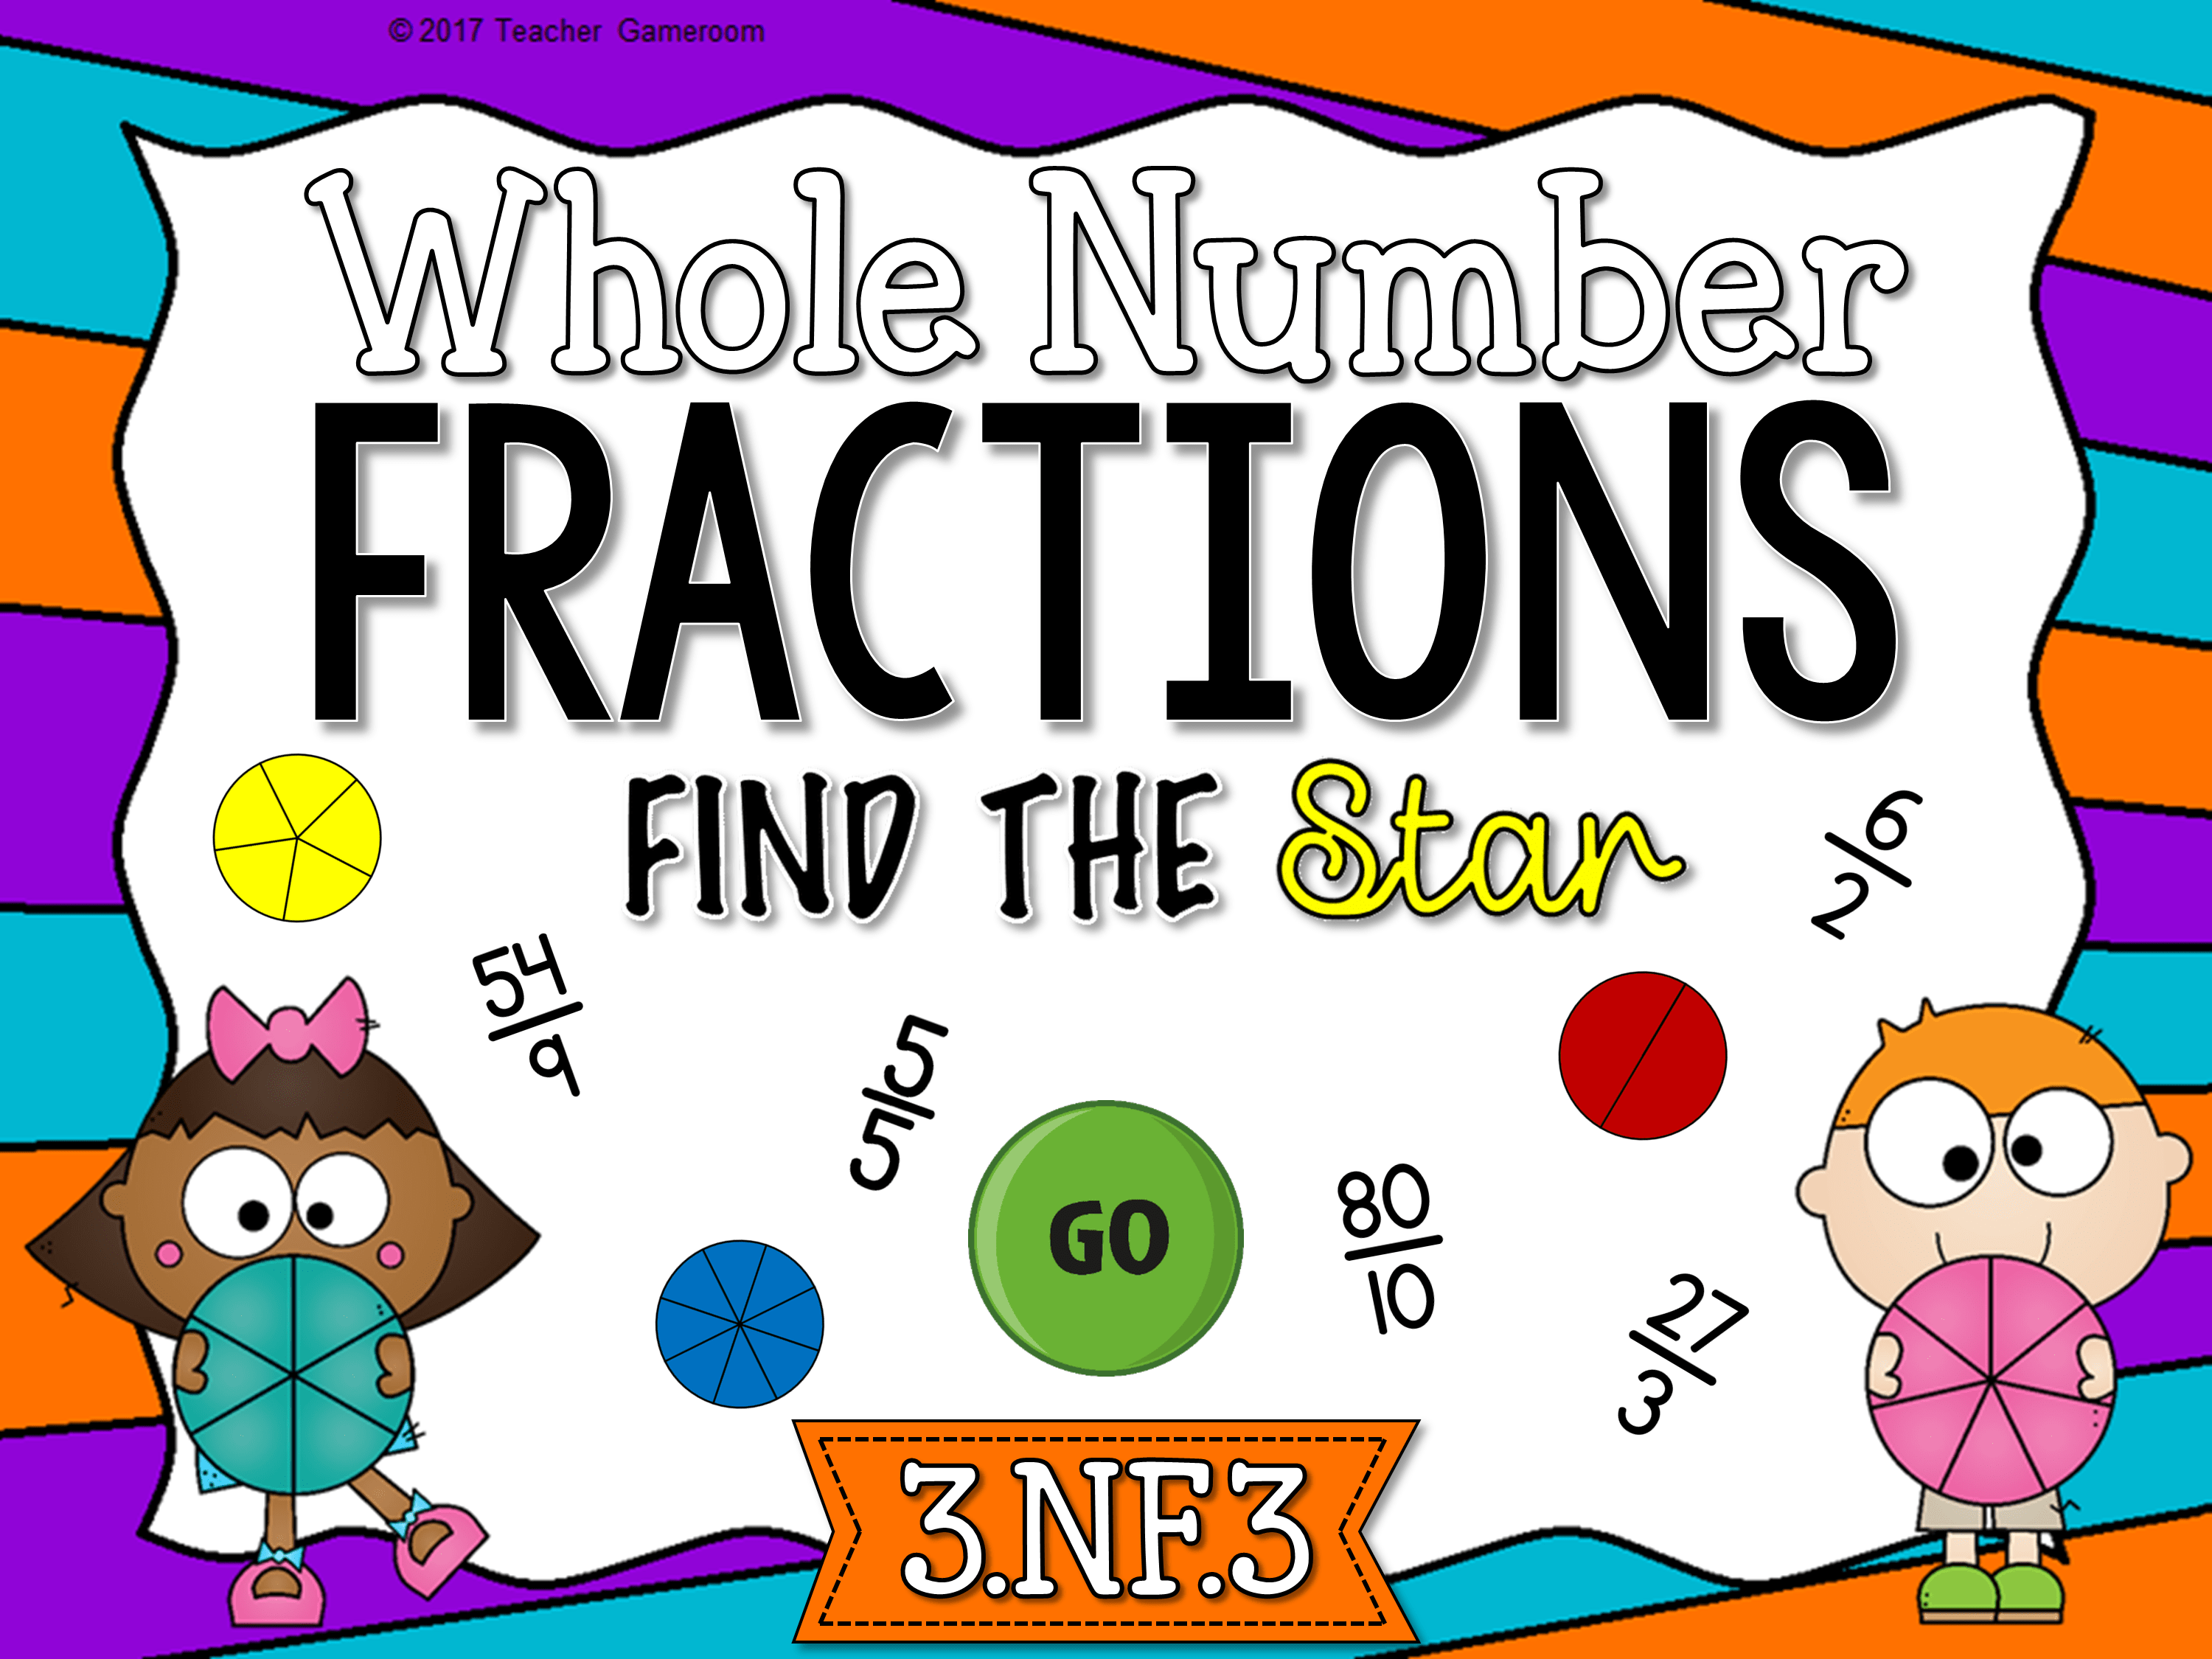 Whole Number Fractions Find The Star Game